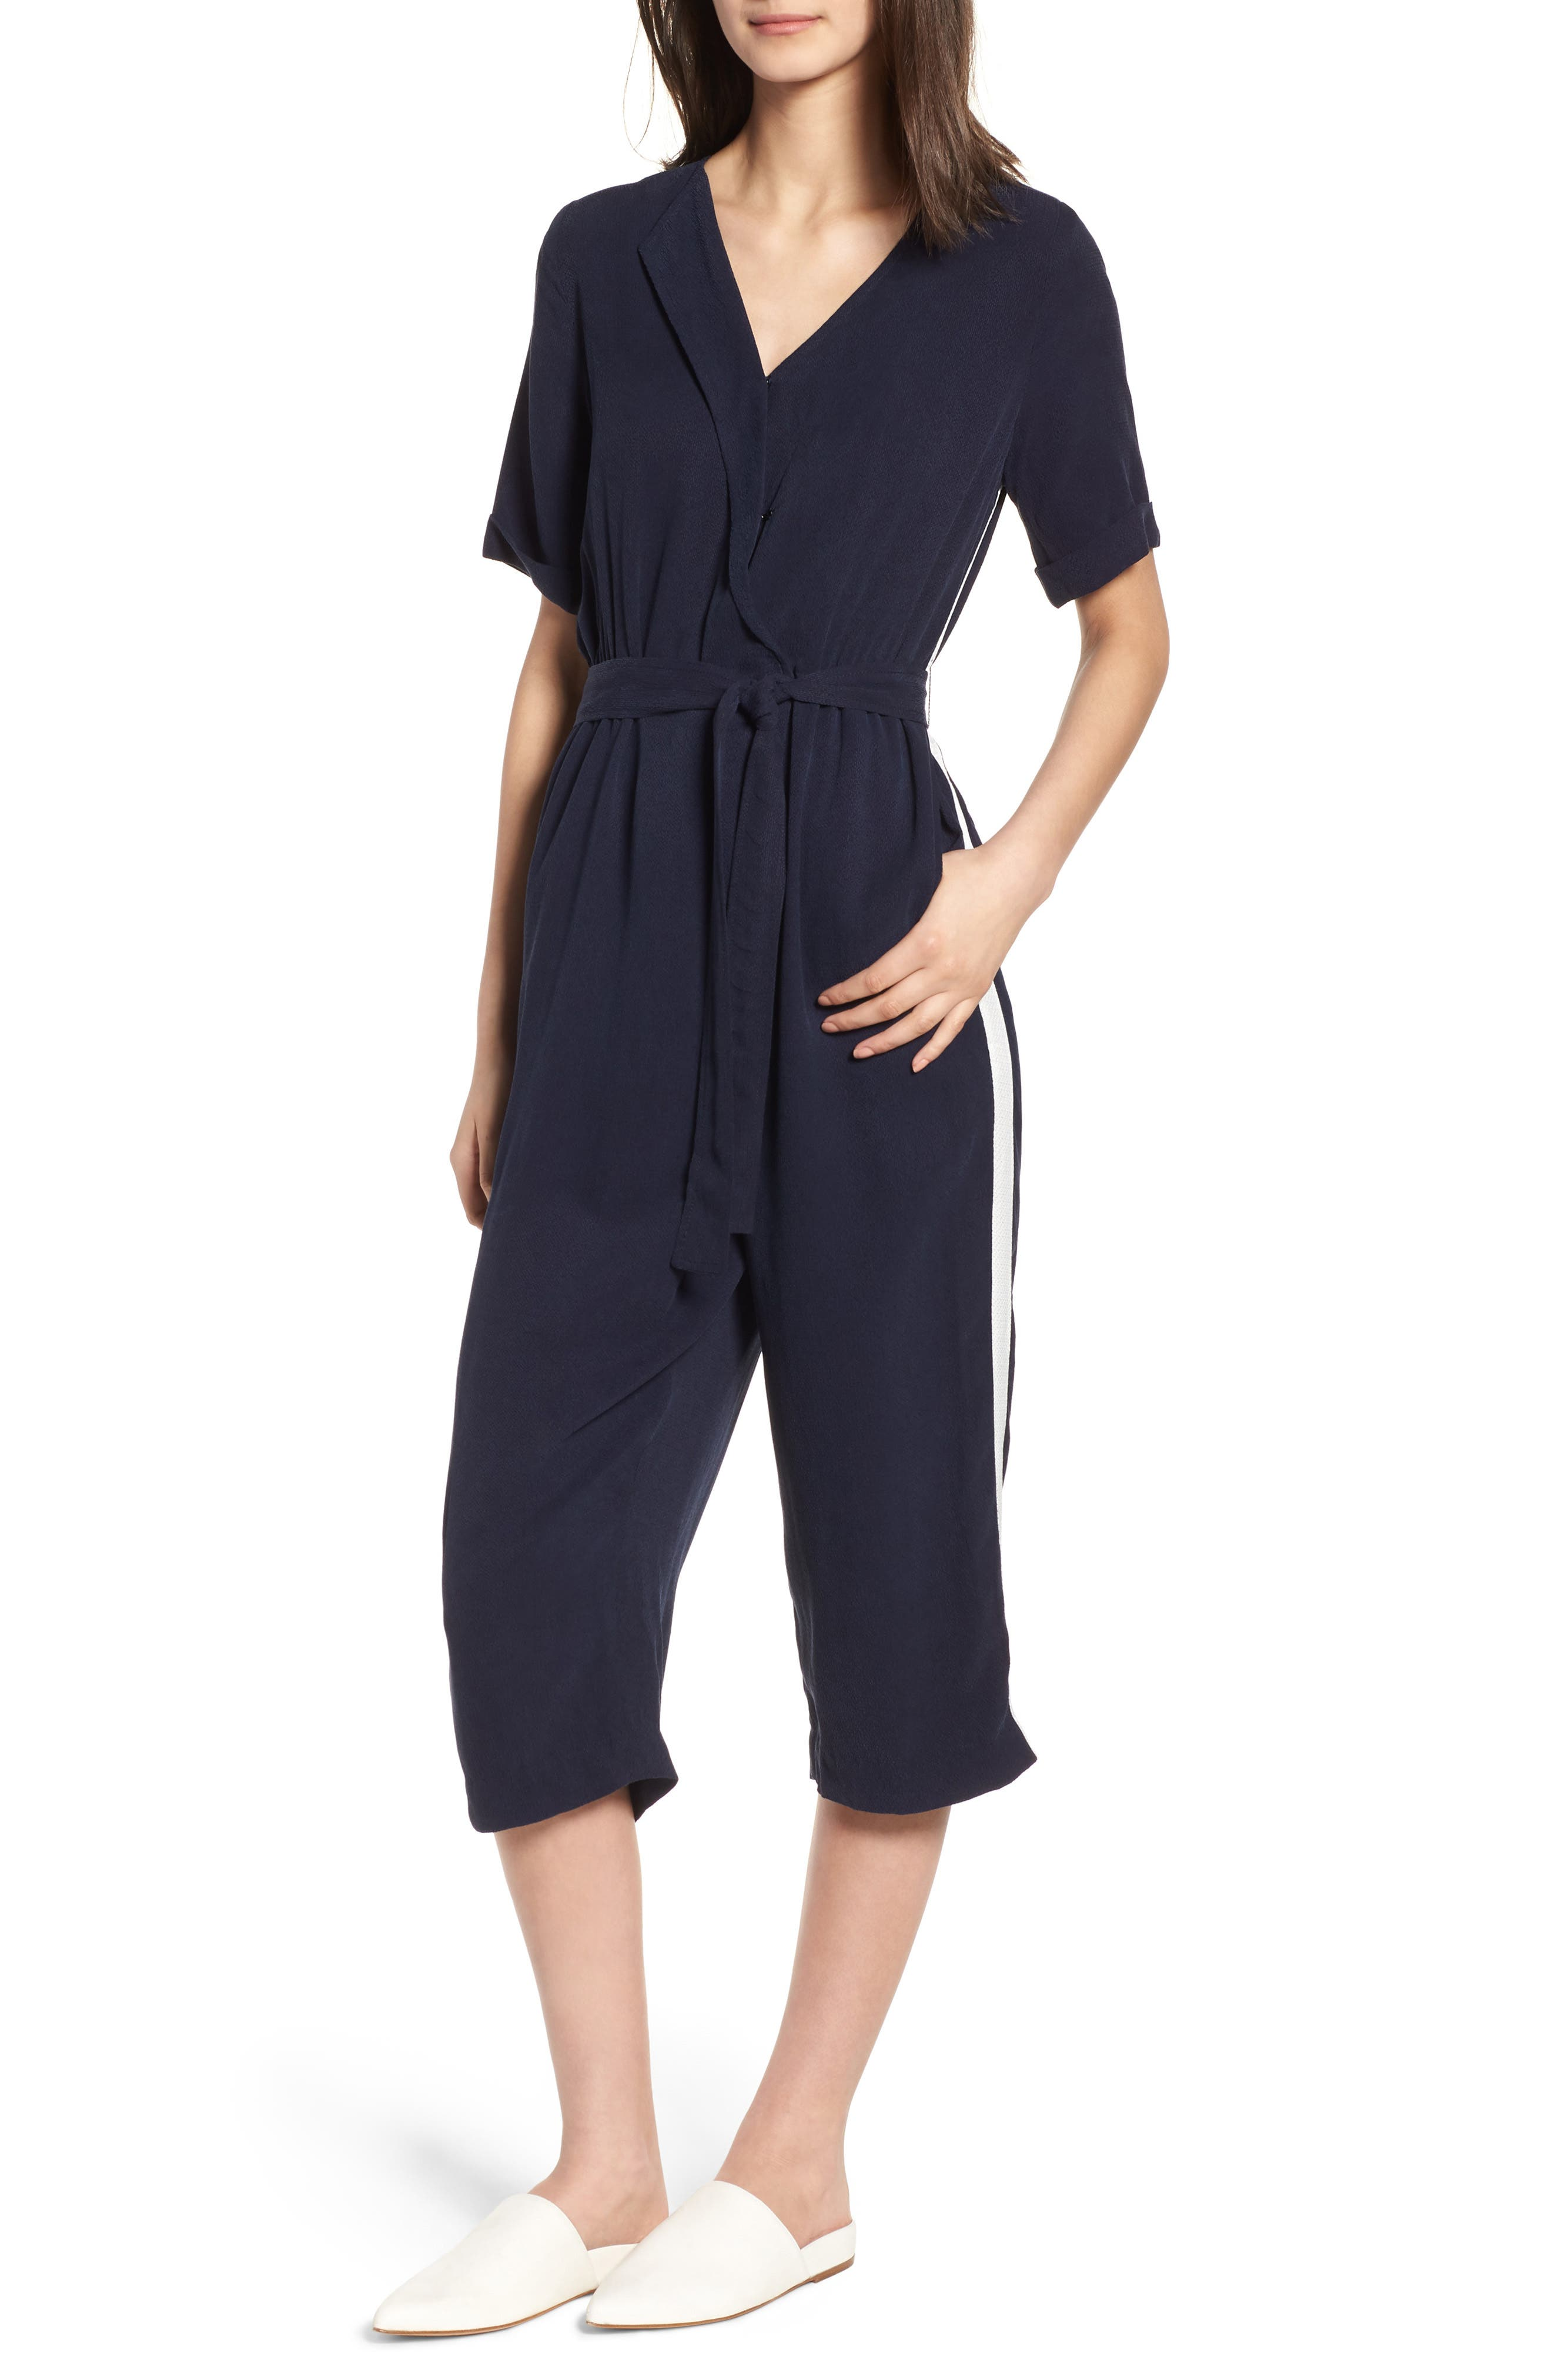 Downstairs Crop Jumpsuit,                             Main thumbnail 1, color,                             410